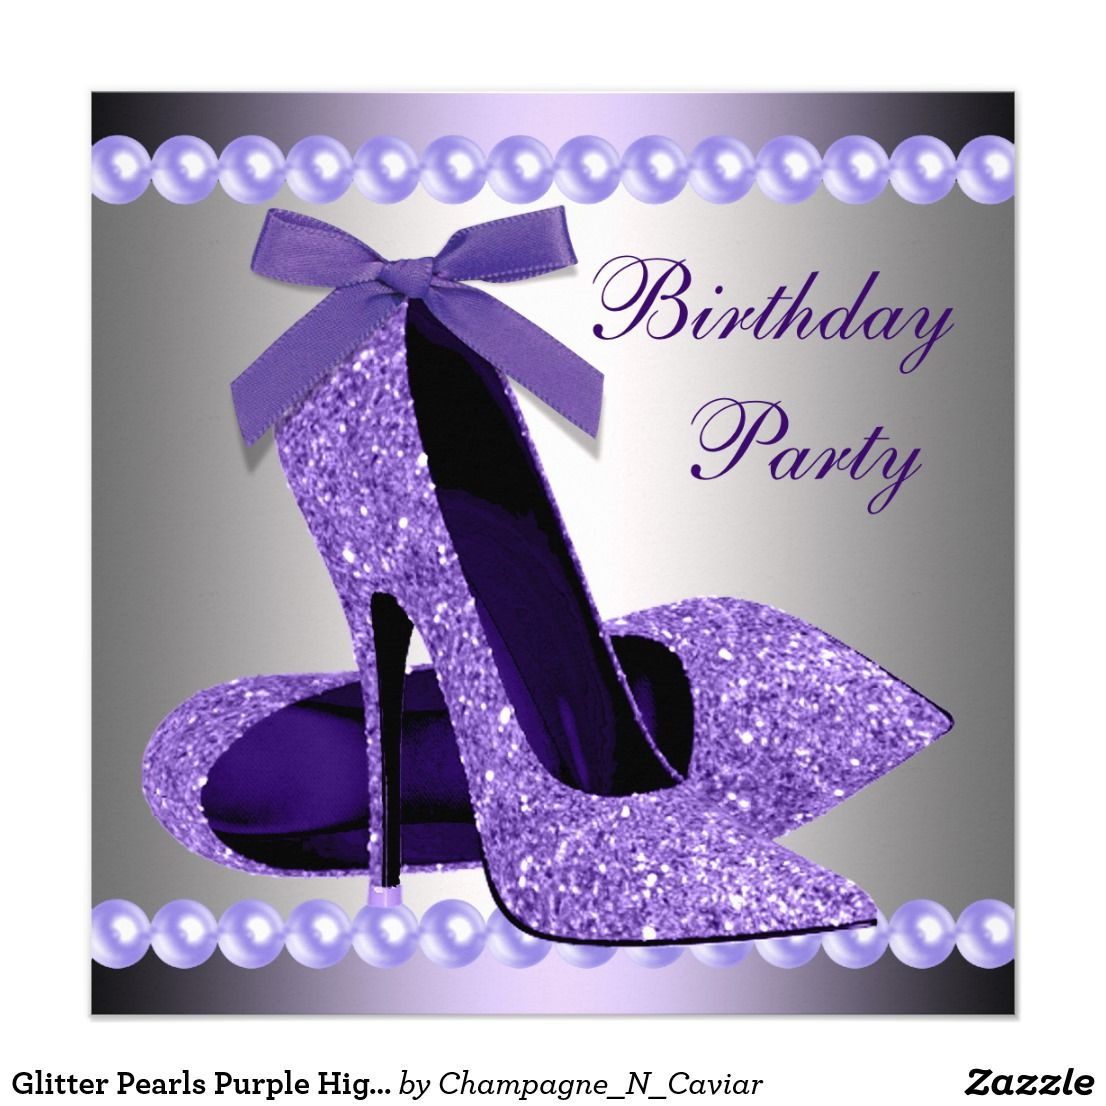 Glitter Pearls Purple High Heels Shoes Birthday Card | Quinceanera ...